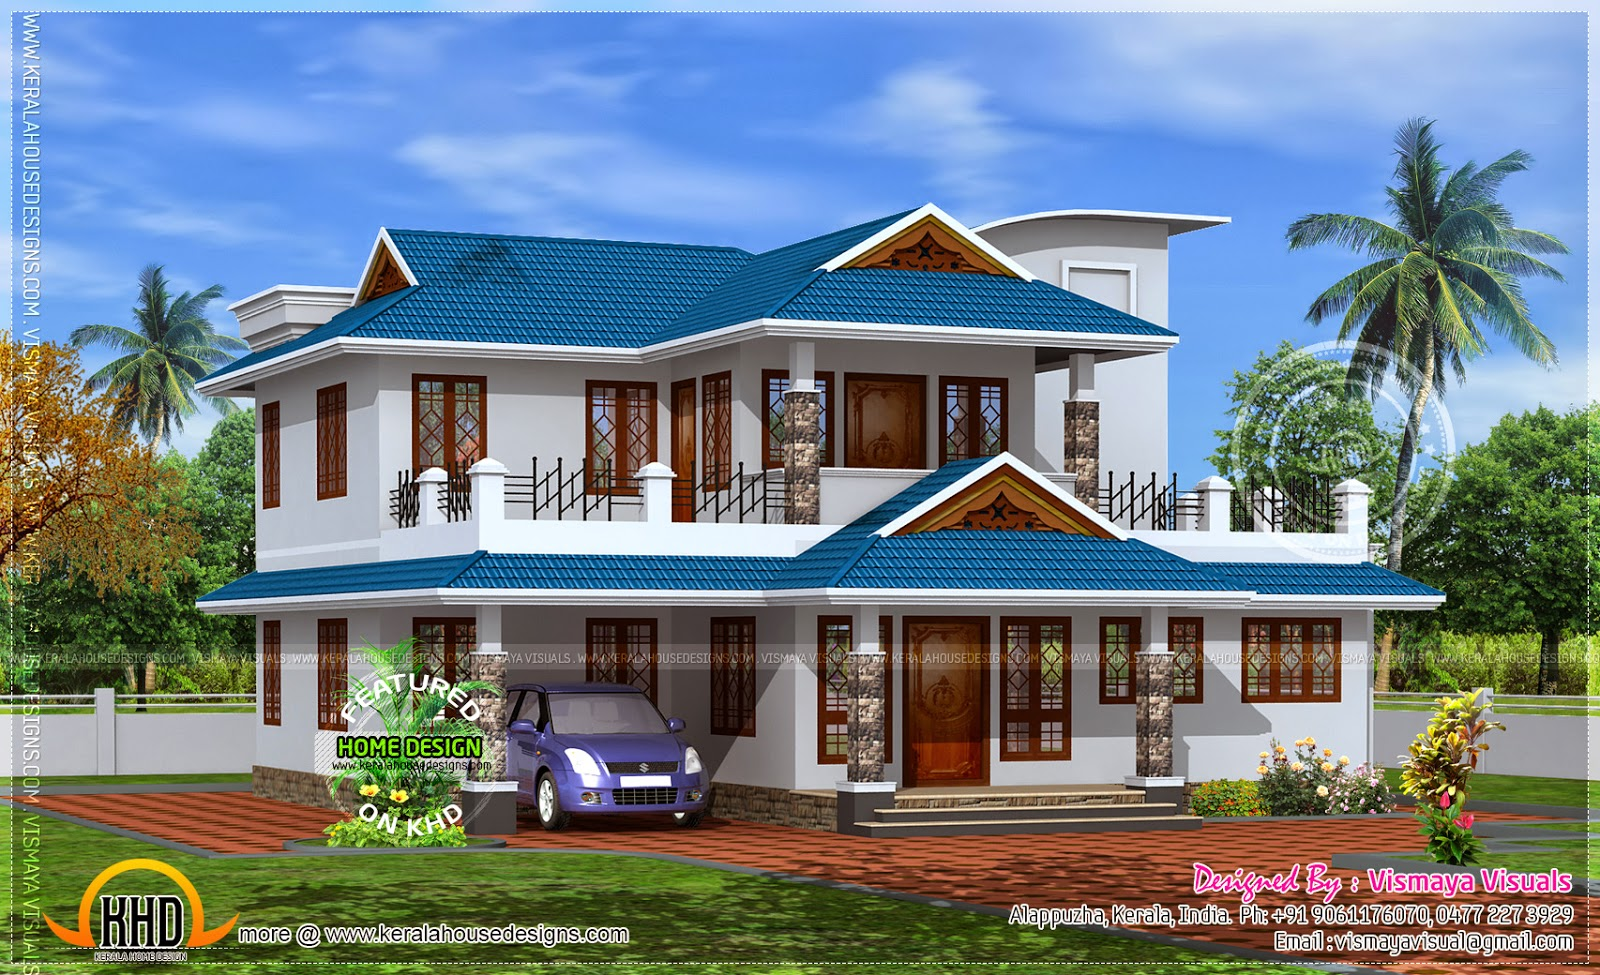 2350 sq feet home model in kerala kerala home design New home models and plans